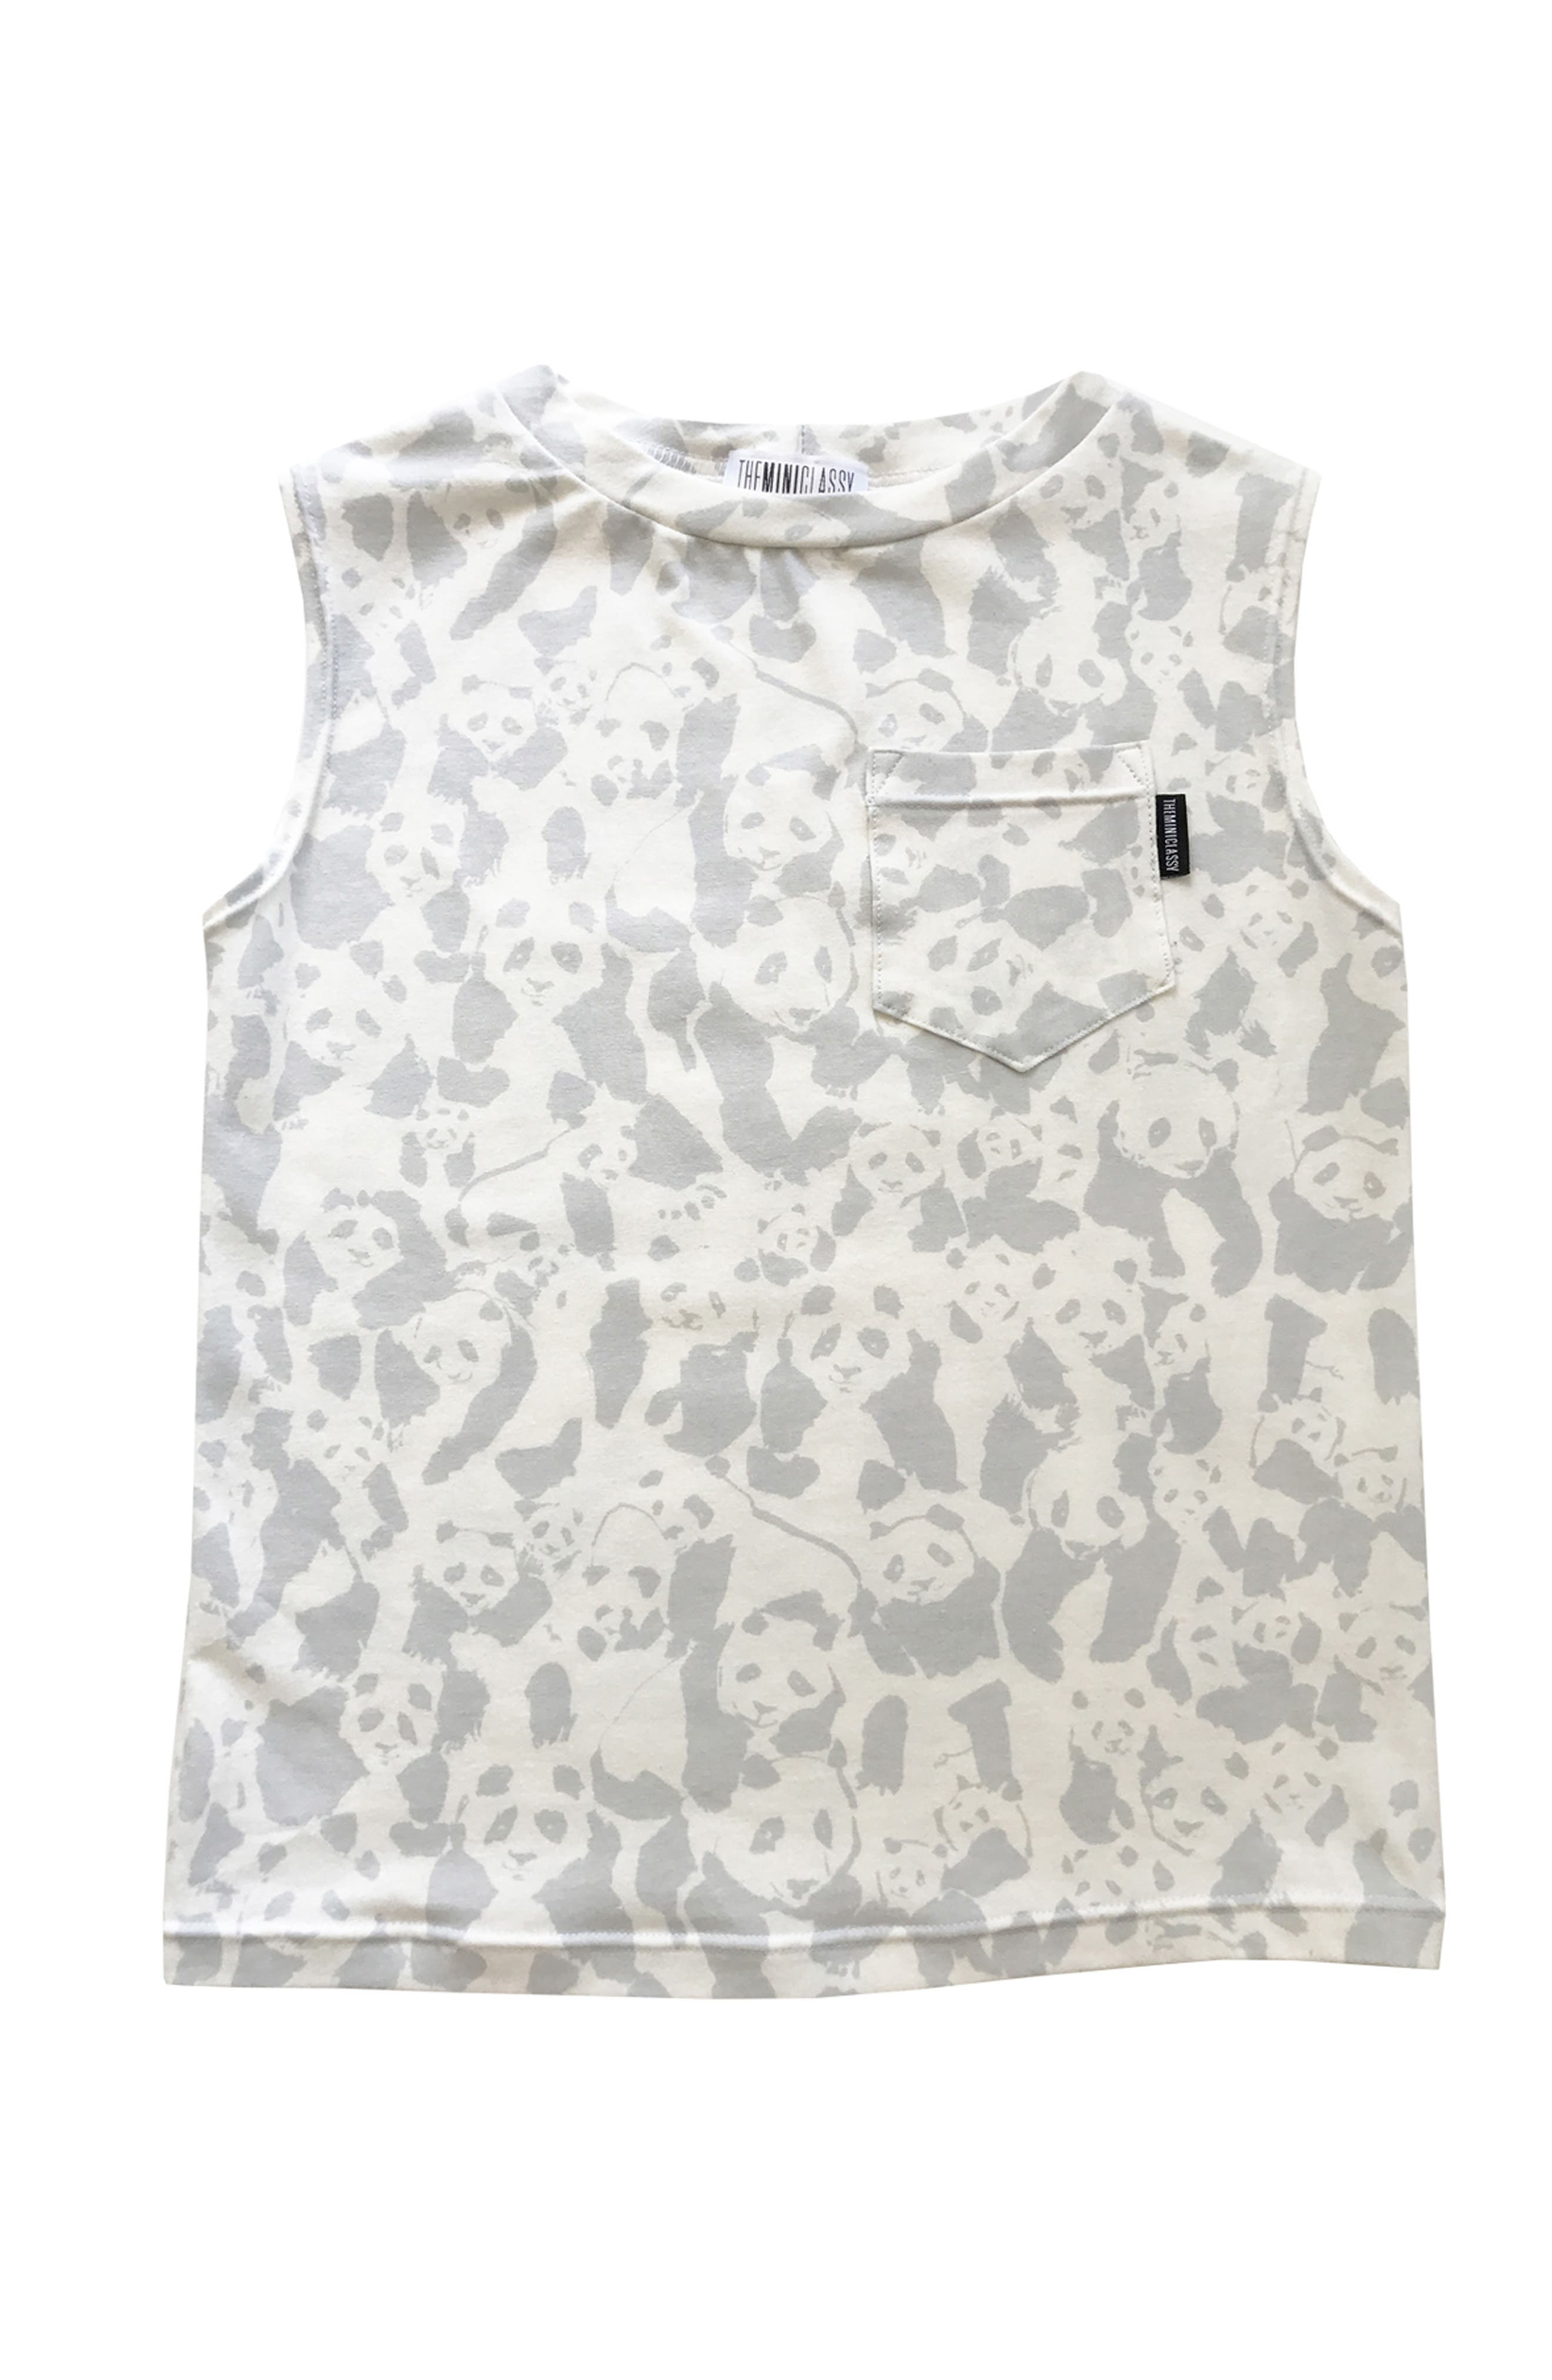 Panda Panda Muscle Shirt,                             Main thumbnail 1, color,                             020